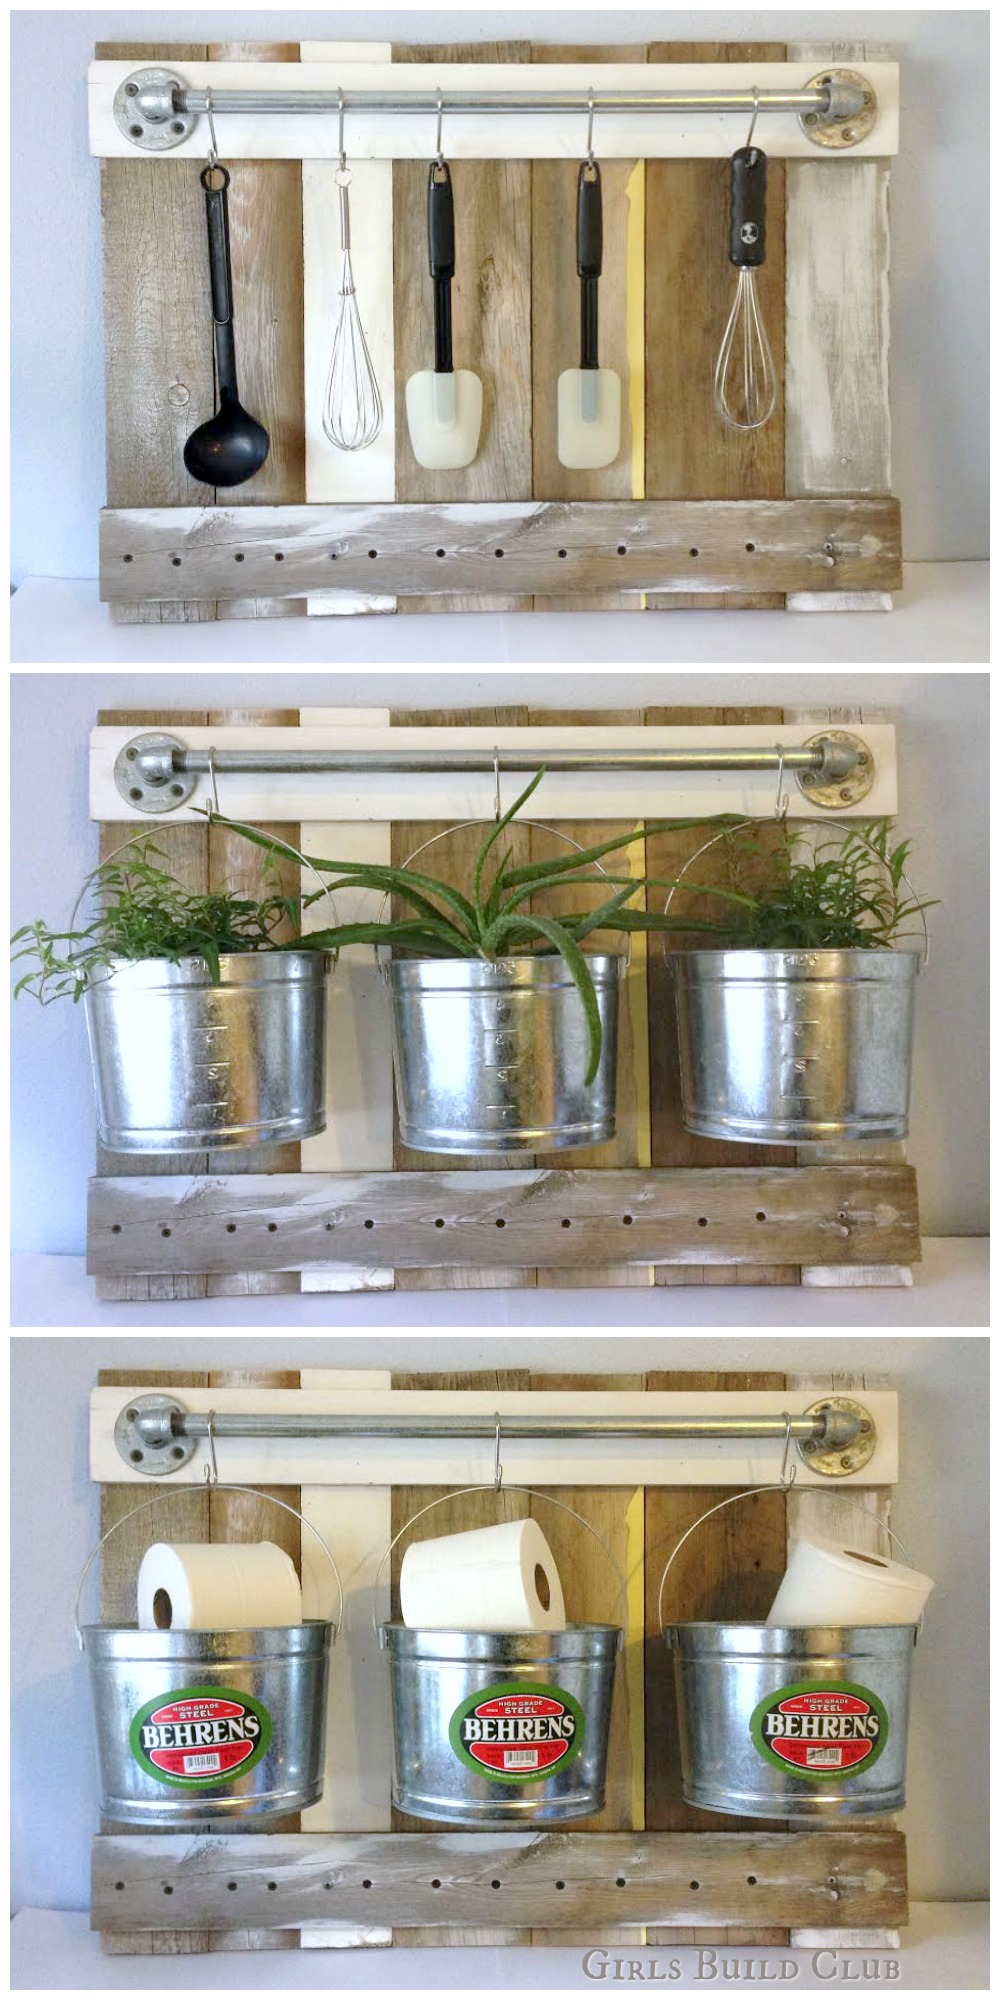 One wall organizer, 3 ways. So many possibilities! Un-clutter your space with this versatile wall organizer diy. It's easy to build from scrap wood and pipe and fits in with a rustic farmhouse decor. Hanging plants, kitchen utensils, or bathroom rack